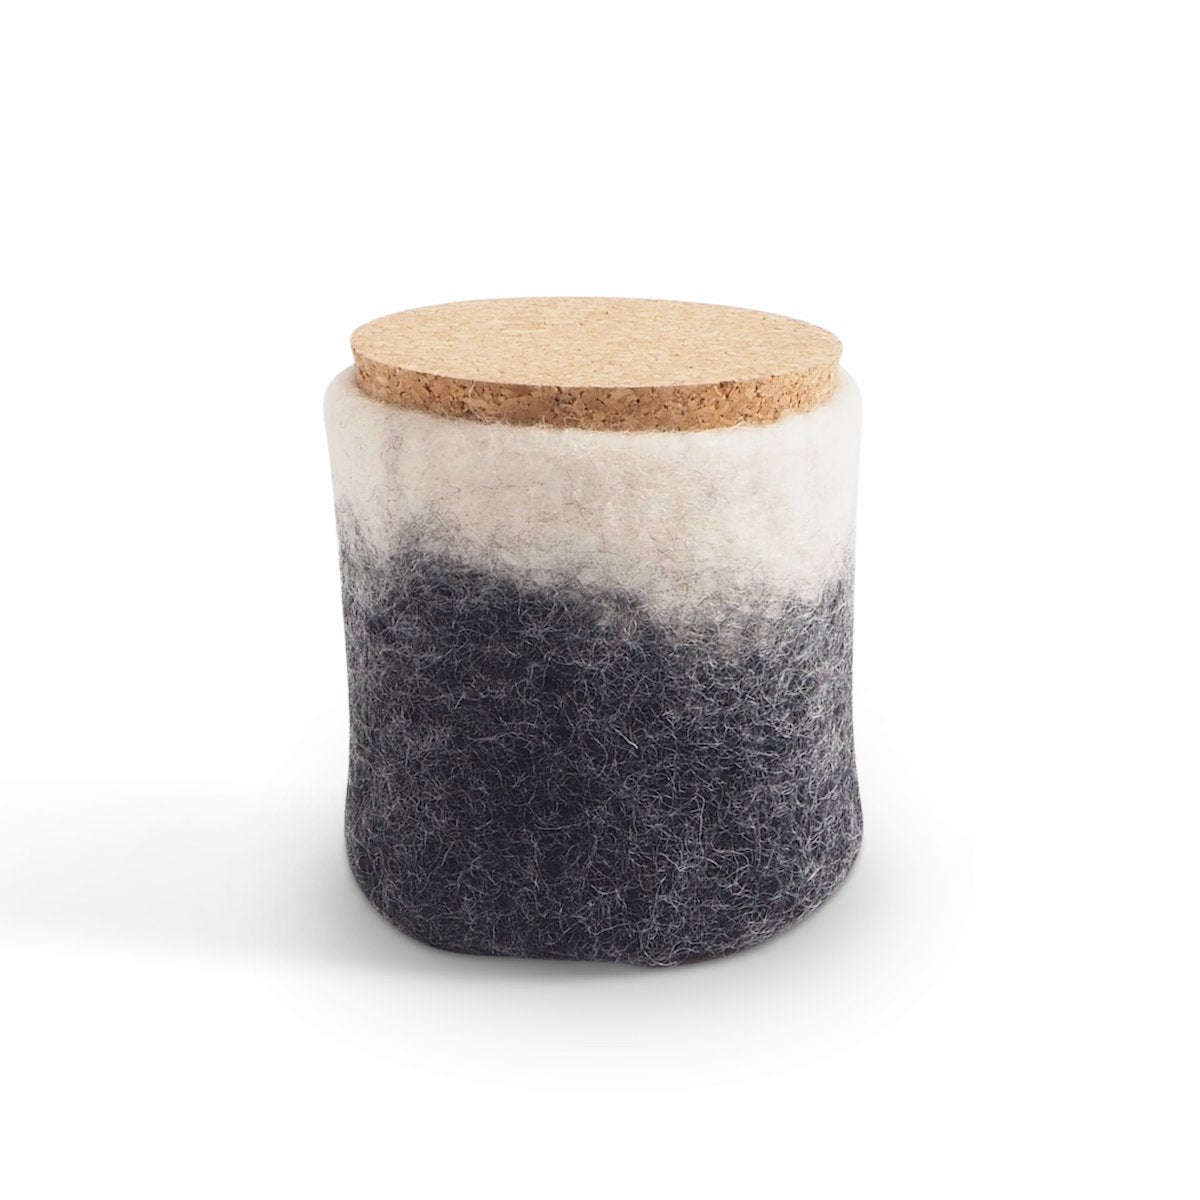 Wool Jar with Cork Lid